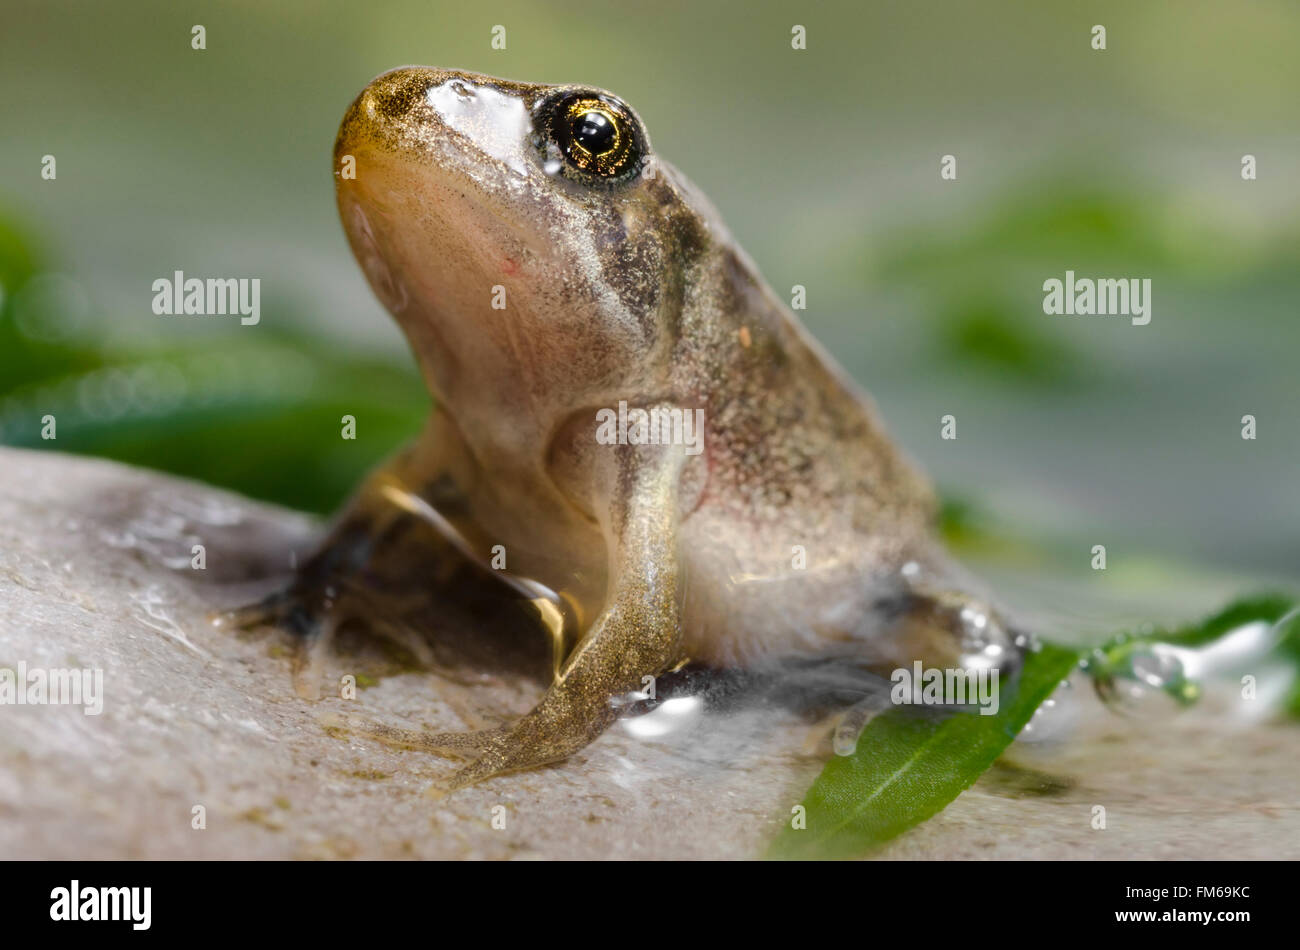 Froglet of Common Frog  Rana temporaria - Stock Image